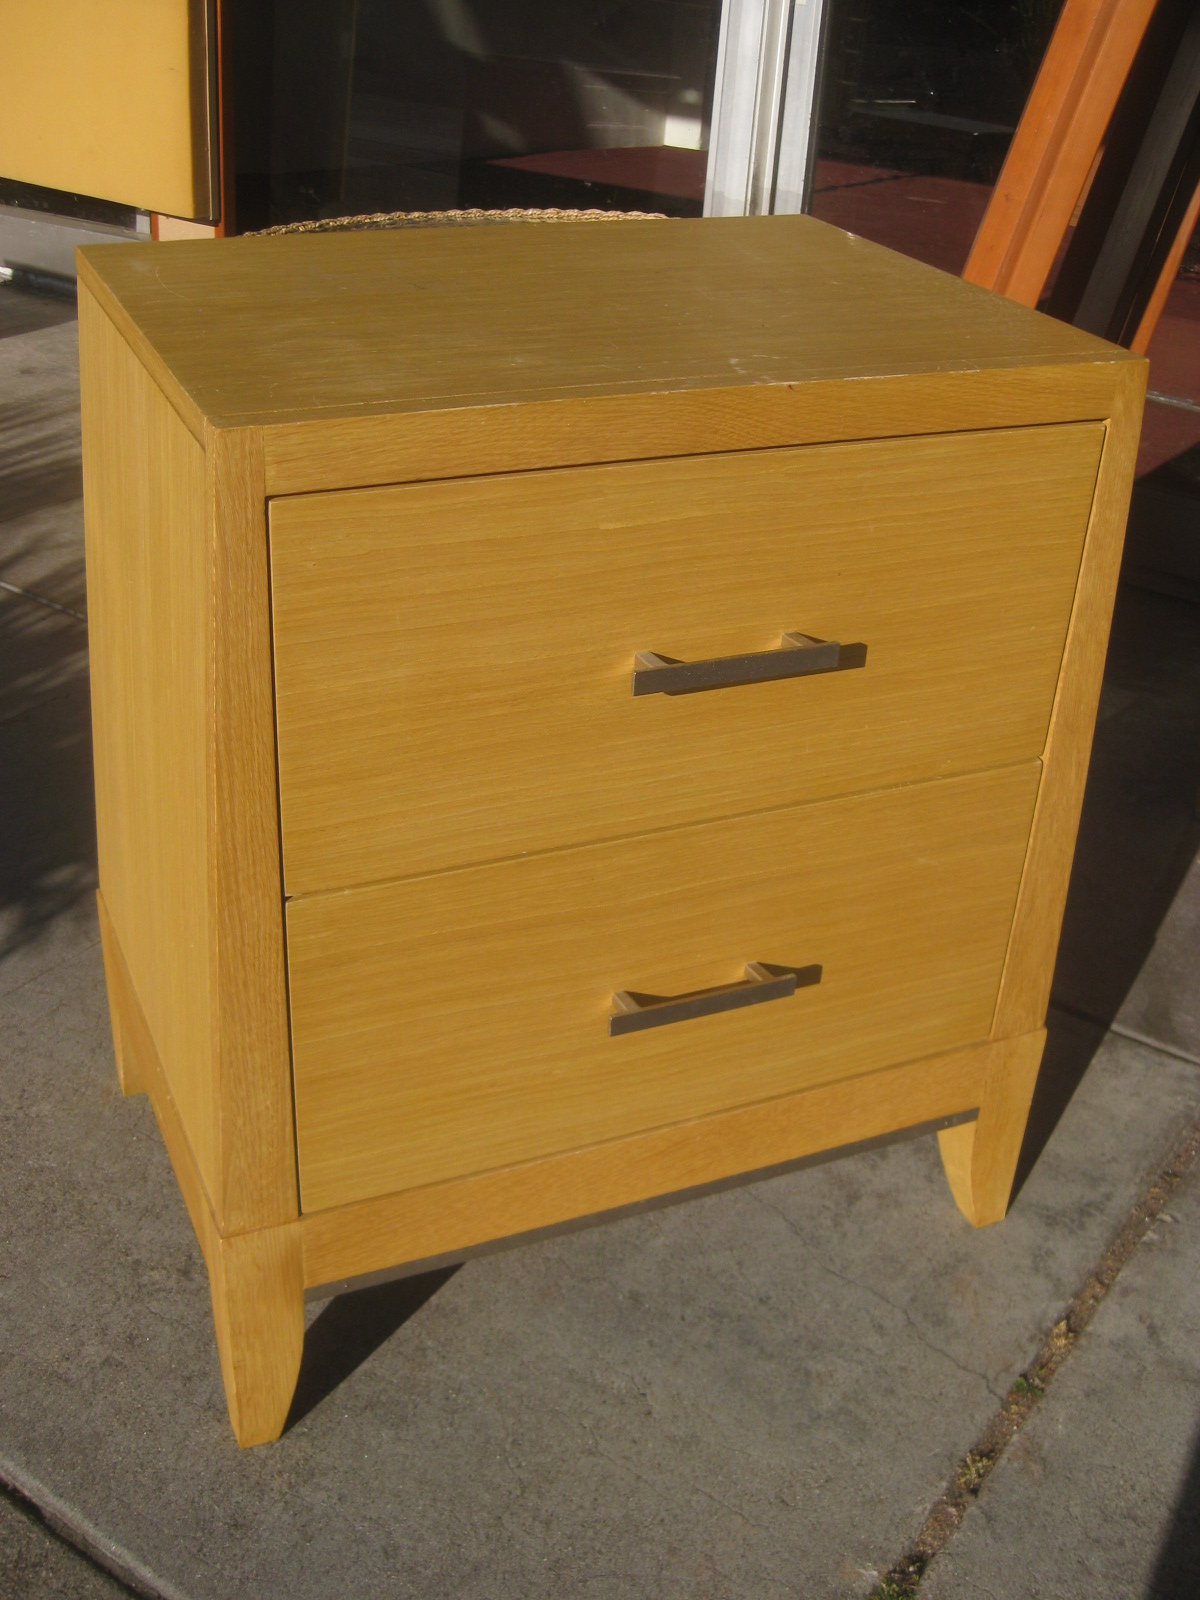 sold pier 1 dresser and night stand 135